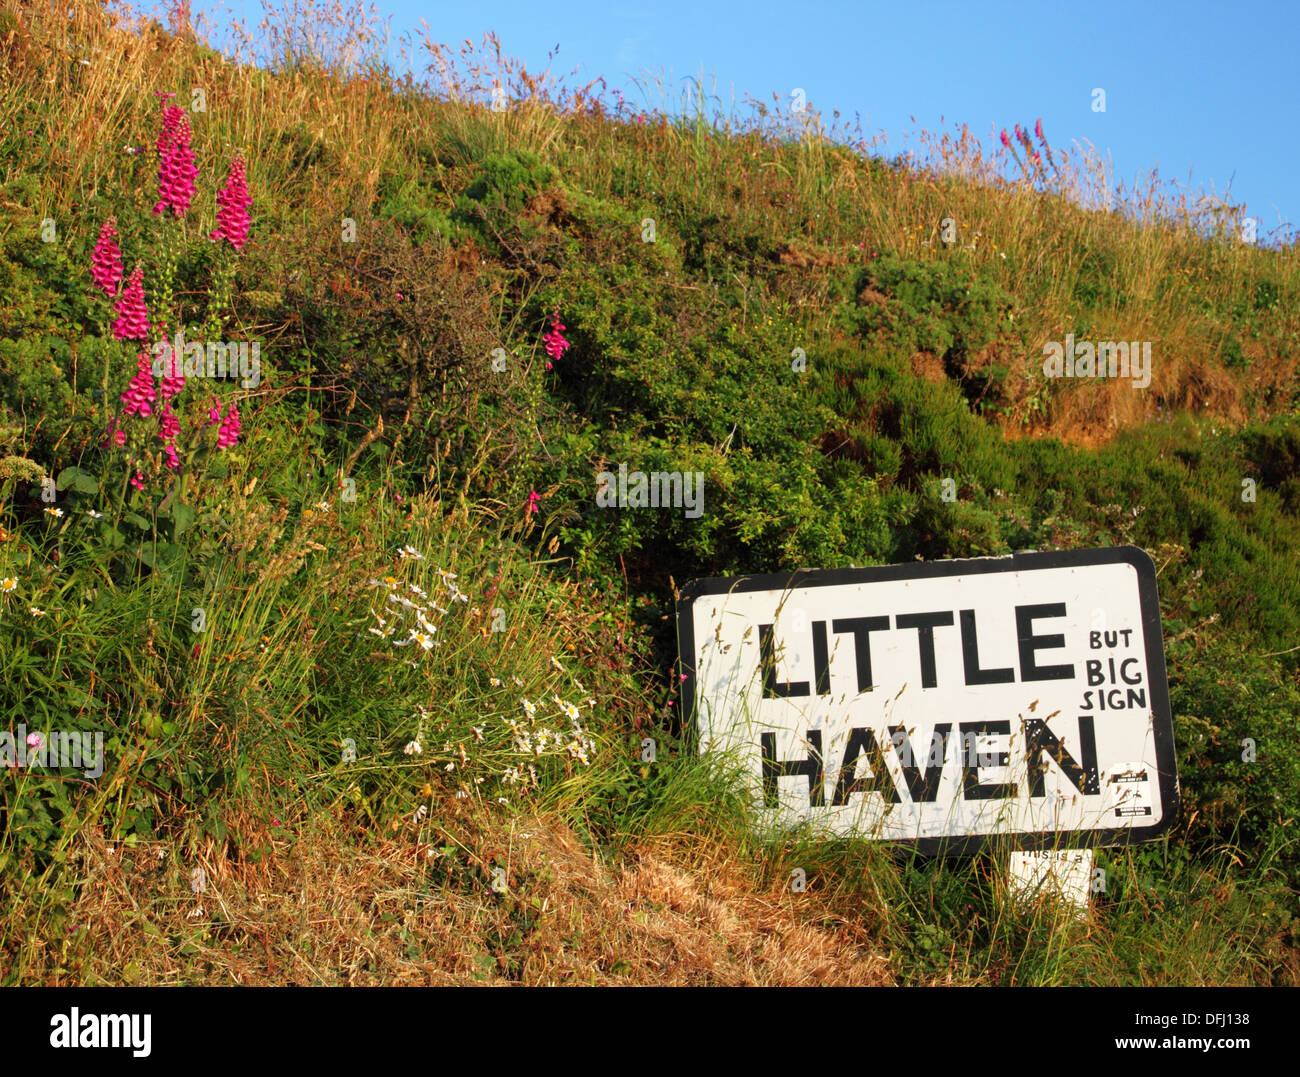 Village sign 'Little Haven' with graffiti. - Stock Image